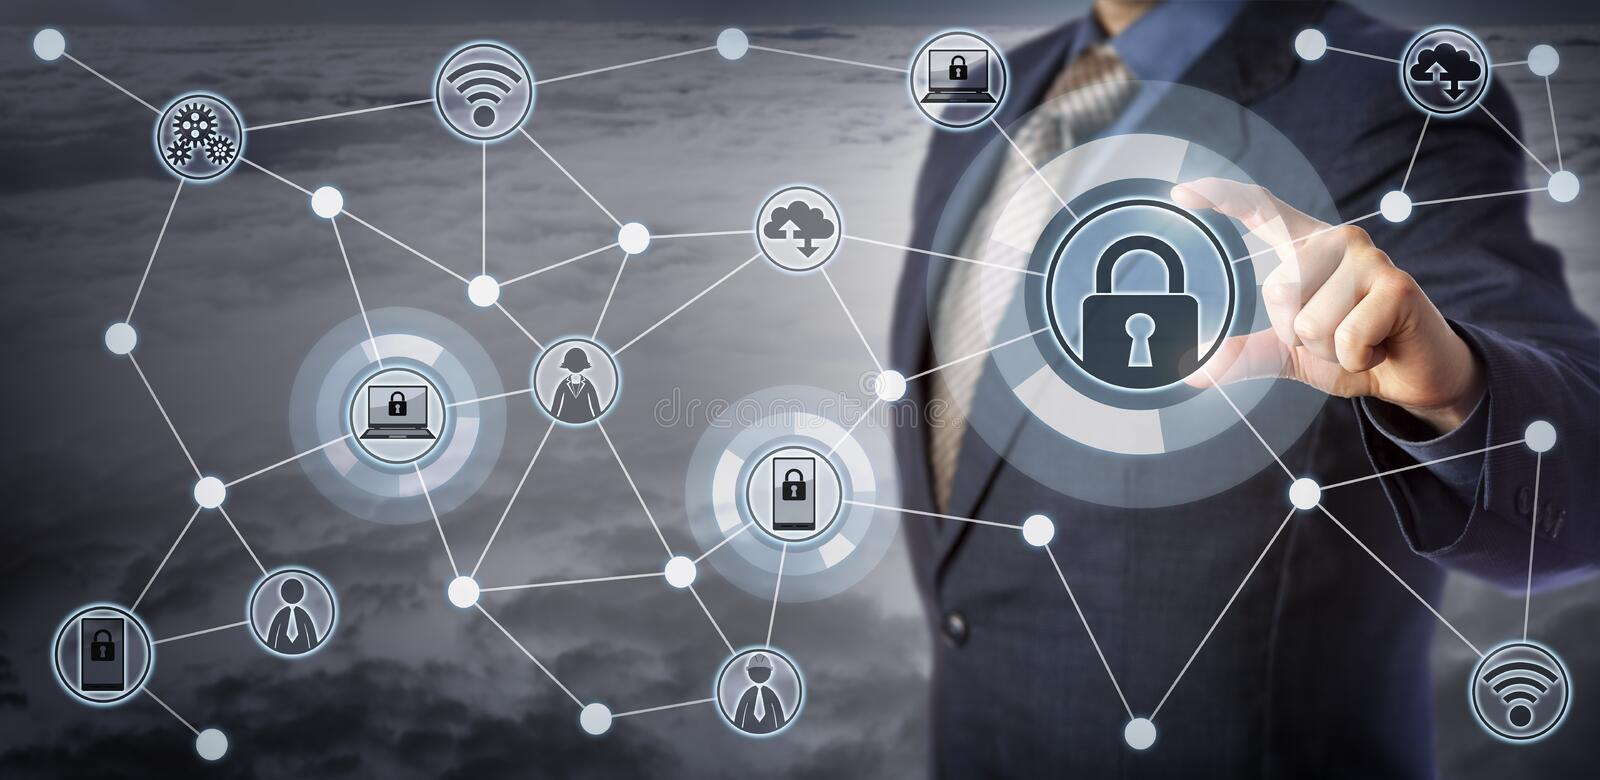 Blue Chip Client Remotely Locking Smart Devices royalty free stock photography